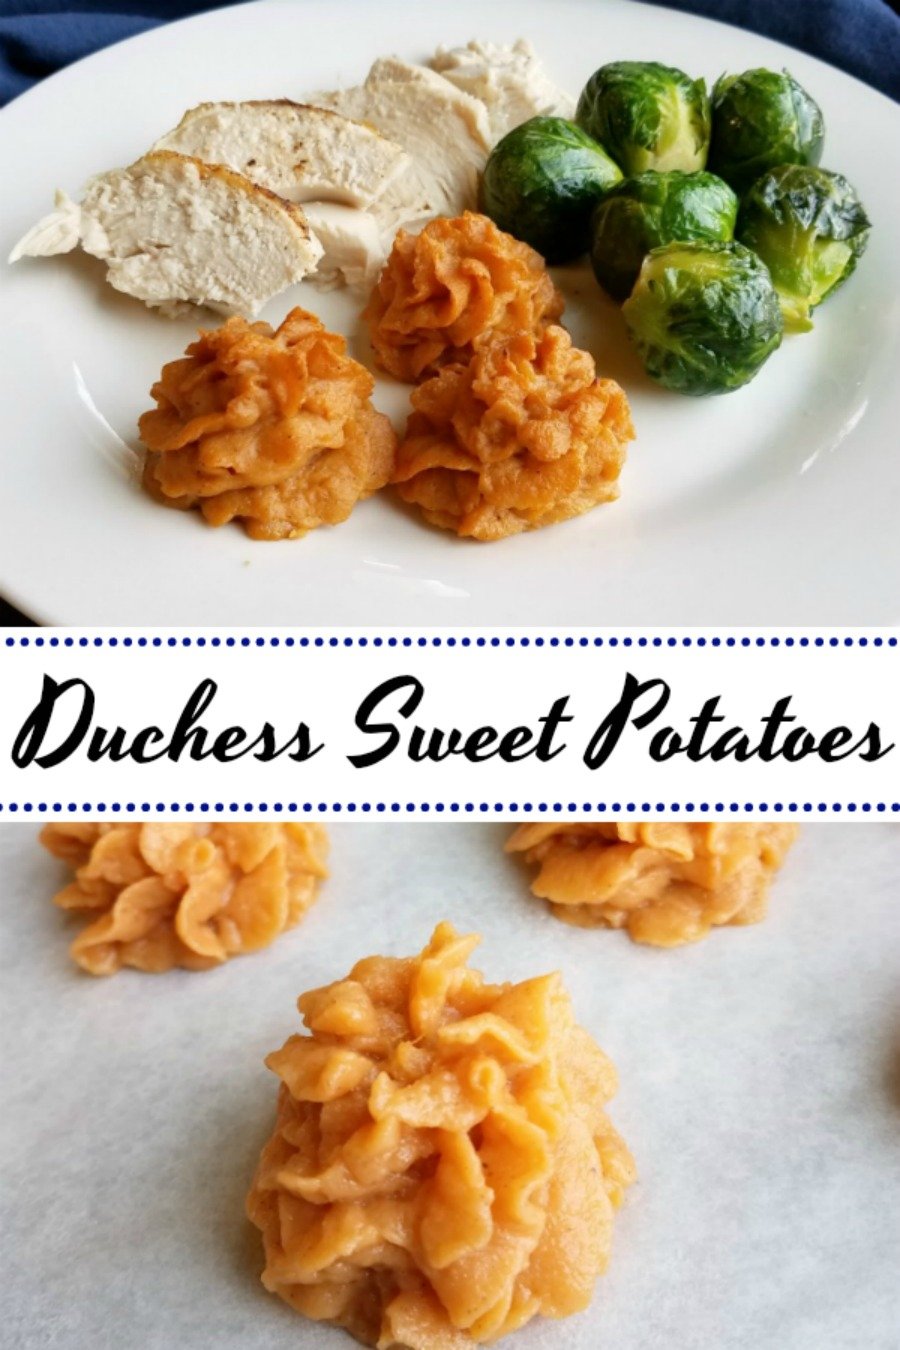 These duchess sweet potatoes add a little pizzazz to your plate, but they are really simple to make. They would be a fun way to change up your Thanksgiving or Christmas meal, but are delicious any time!